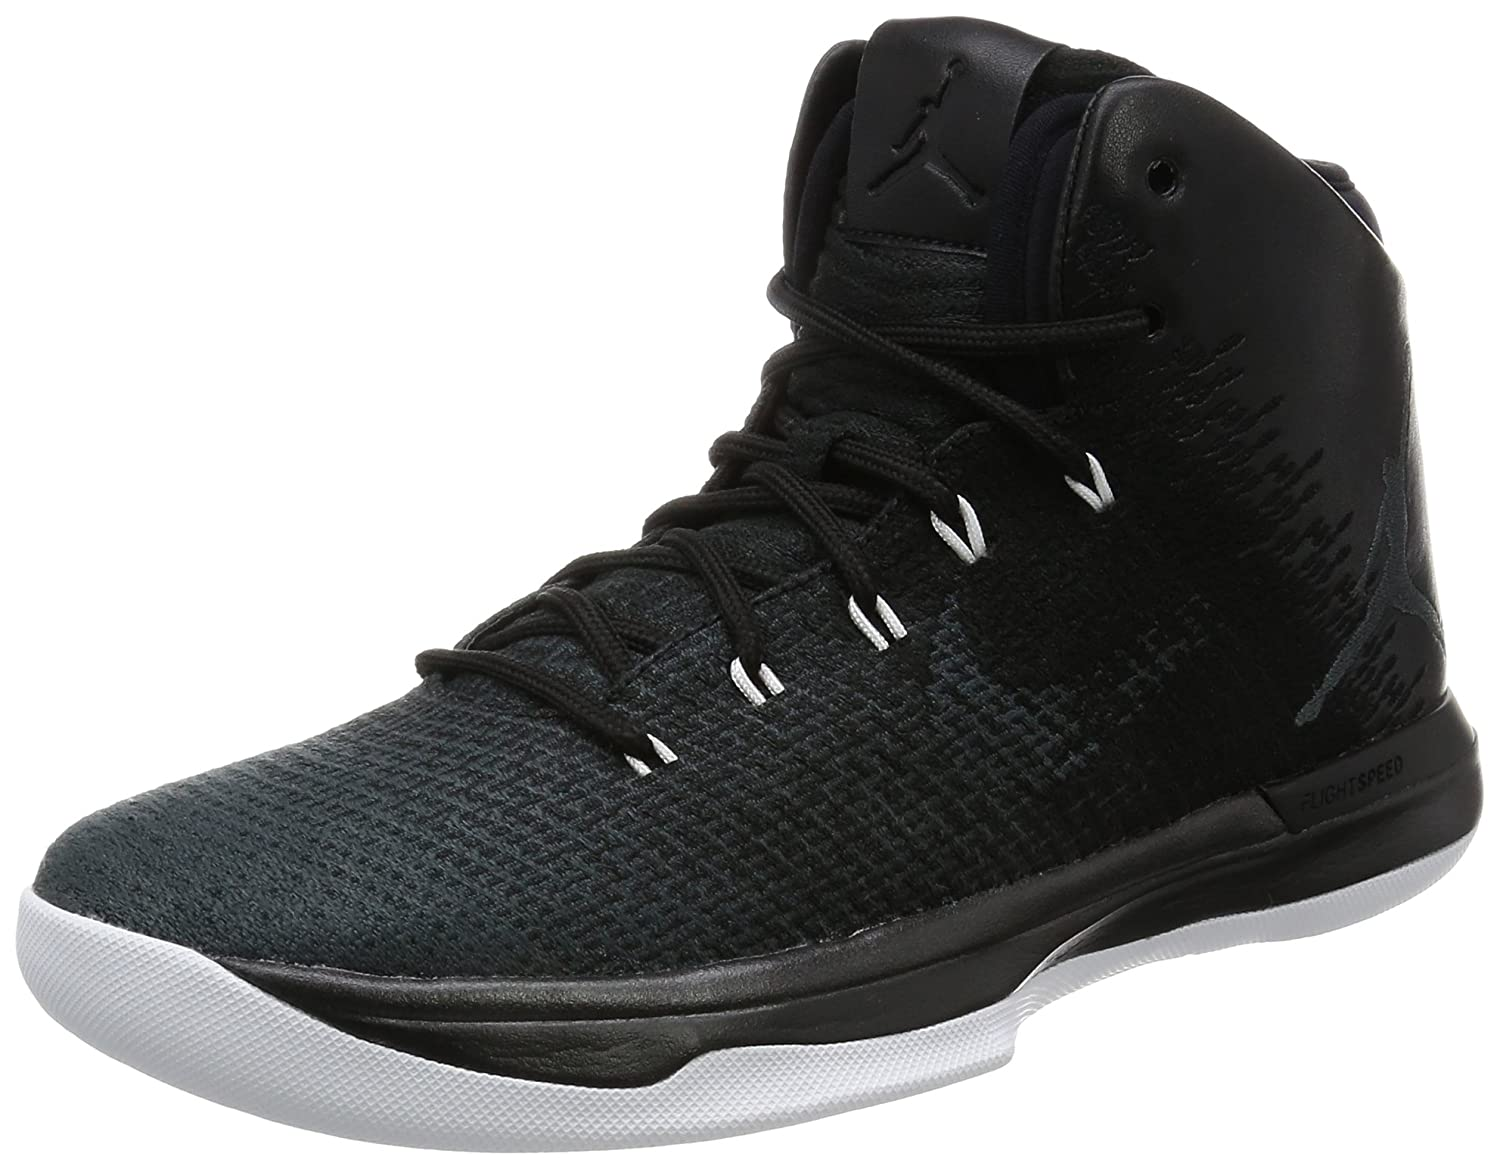 4ee7e258dc2 Amazon.com | Jordan Nike Air XXXI Mens Basketball Shoes (8 D(M) US) |  Basketball